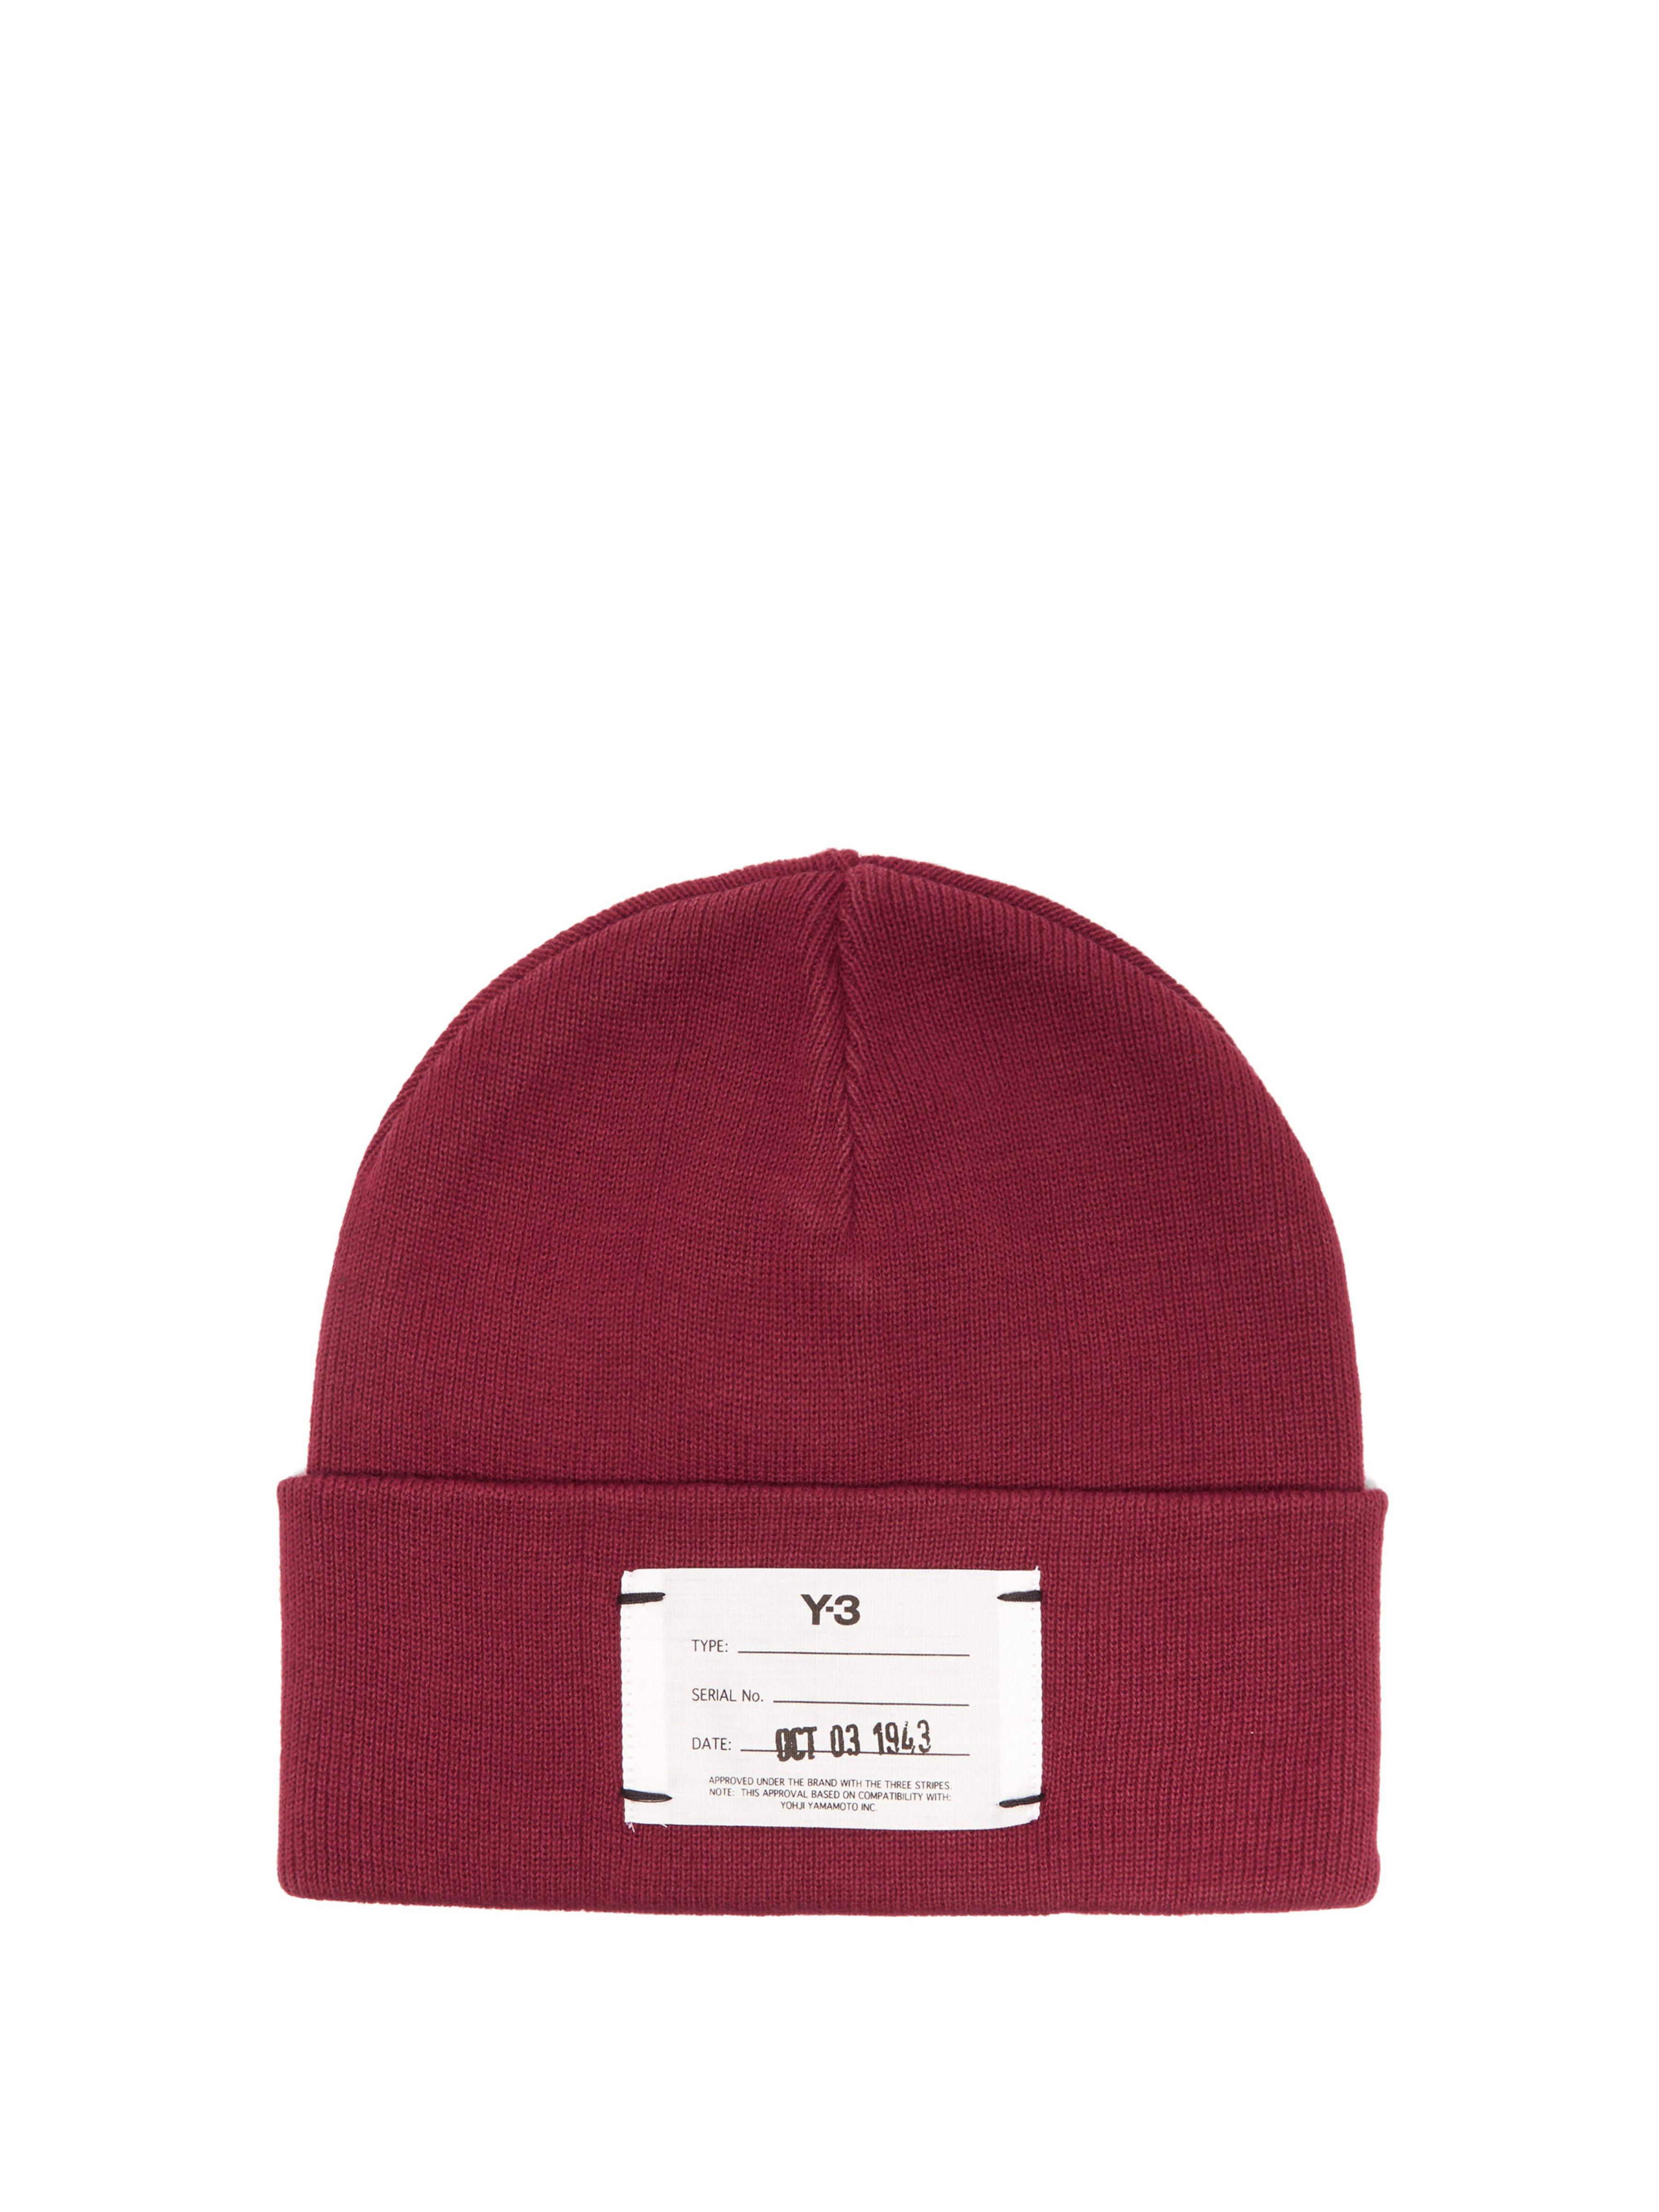 a1d75487a4c Y-3 Logo Ribbed Cotton Beanie Hat in Red for Men - Lyst